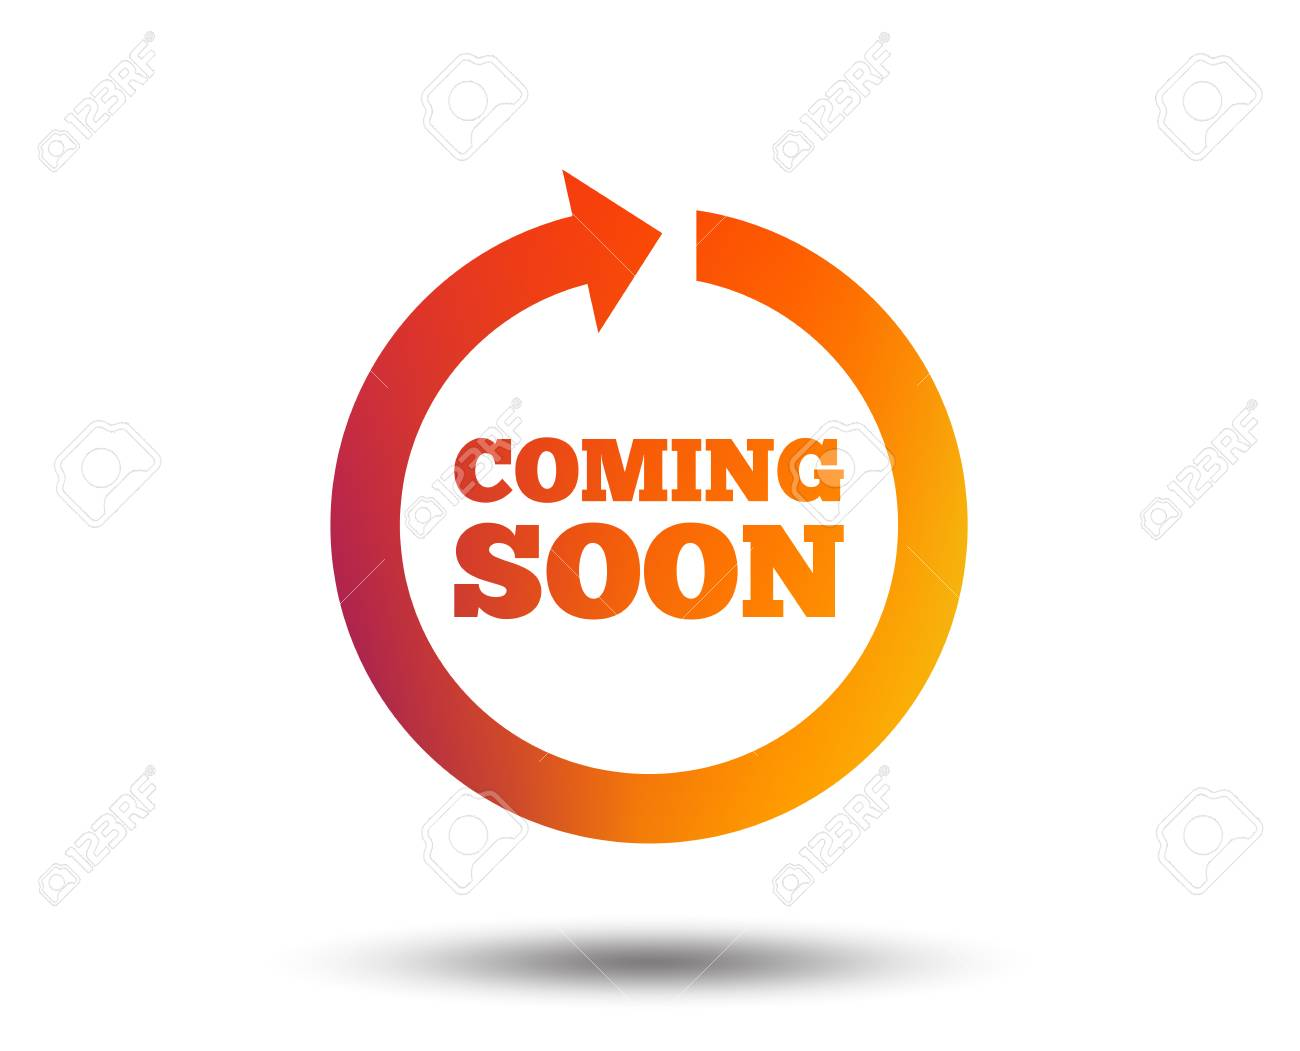 Coming soon sign icon. Promotion announcement symbol. Blurred gradient design element. Vivid graphic flat icon. Vector - 102807554